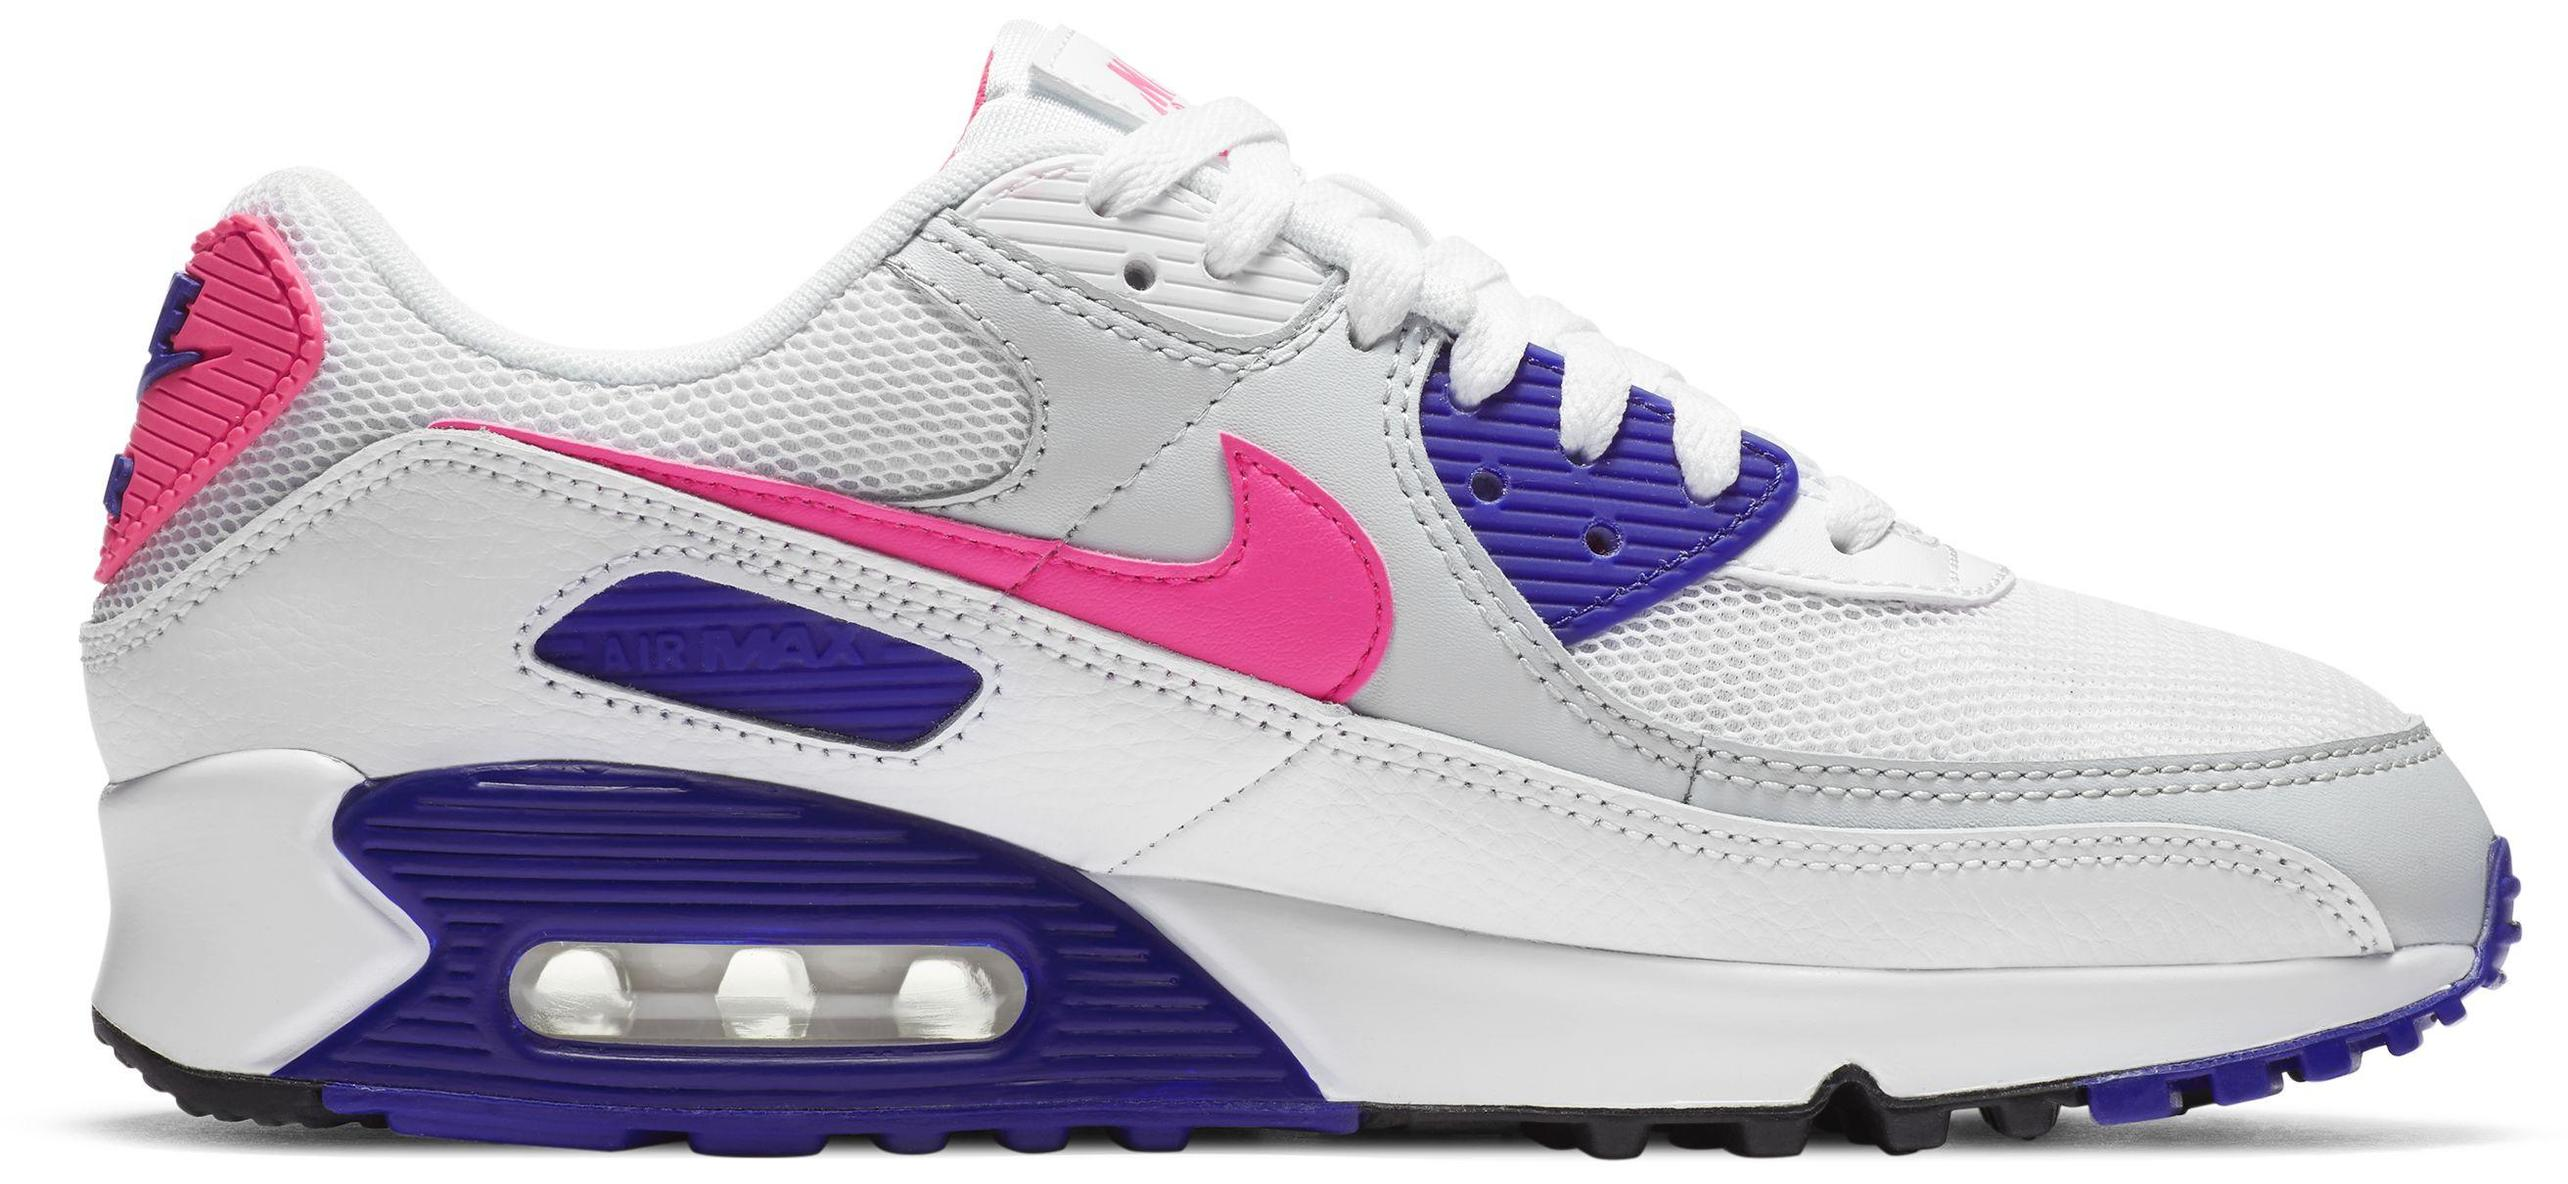 Nike Air Max 90 White/Concord/Pure Platinum/Hyper Pink